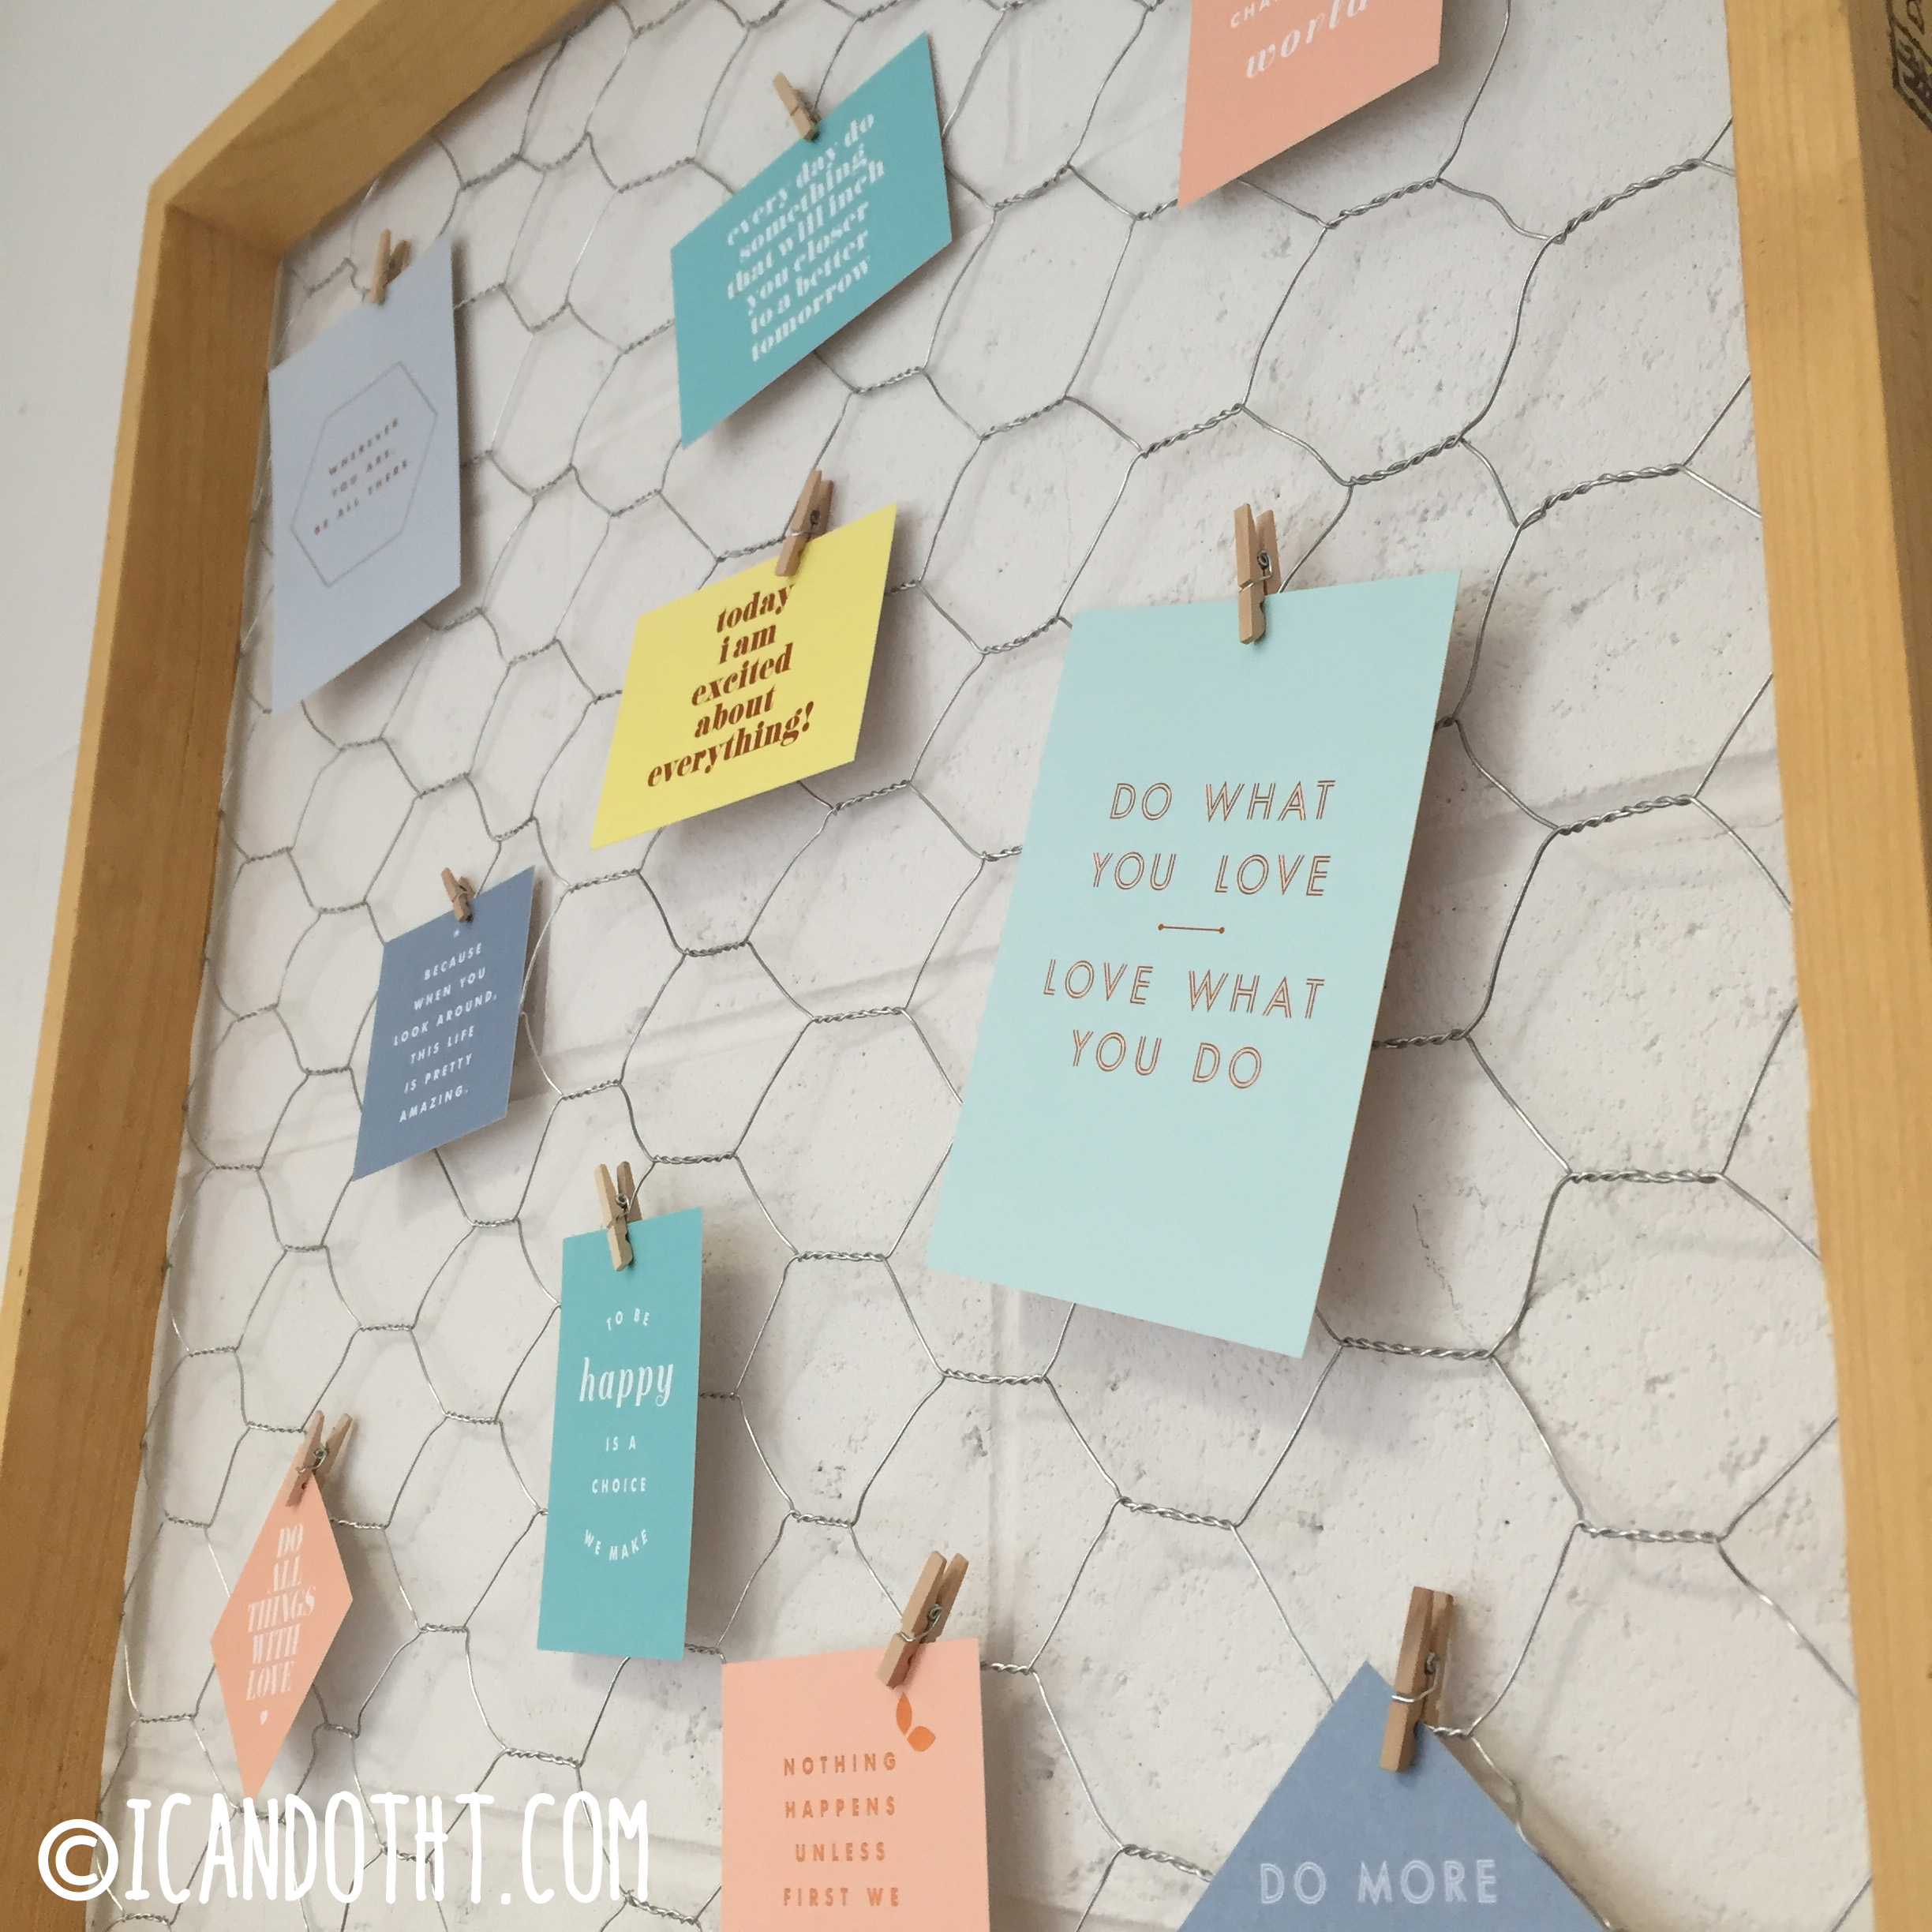 D.I.Y. Rustic Noteboard – I can do that!